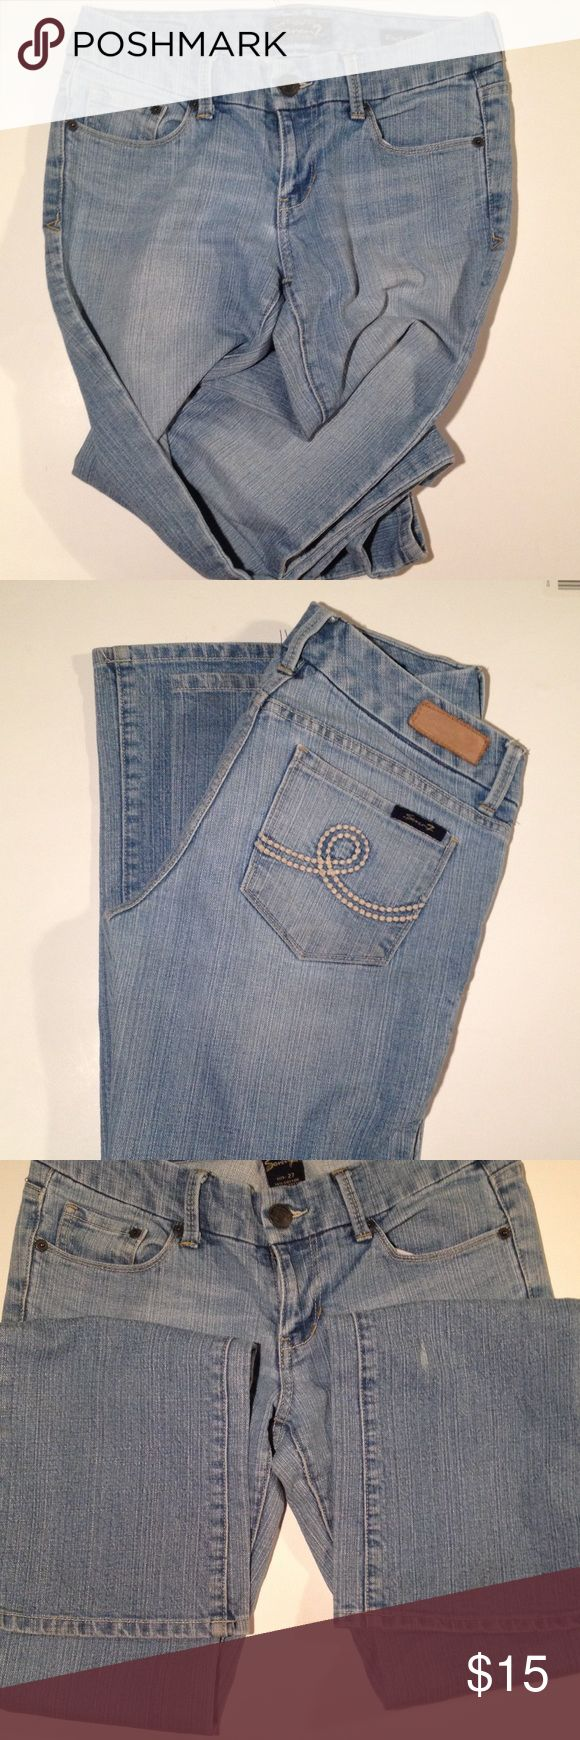 Seven 7 jeans Boot cut seven7 jeans. Distressed style. 34 inch inseam. Cotton, polyester, spandex. Priced for the BUY NOW button. Seven7 Jeans Boot Cut